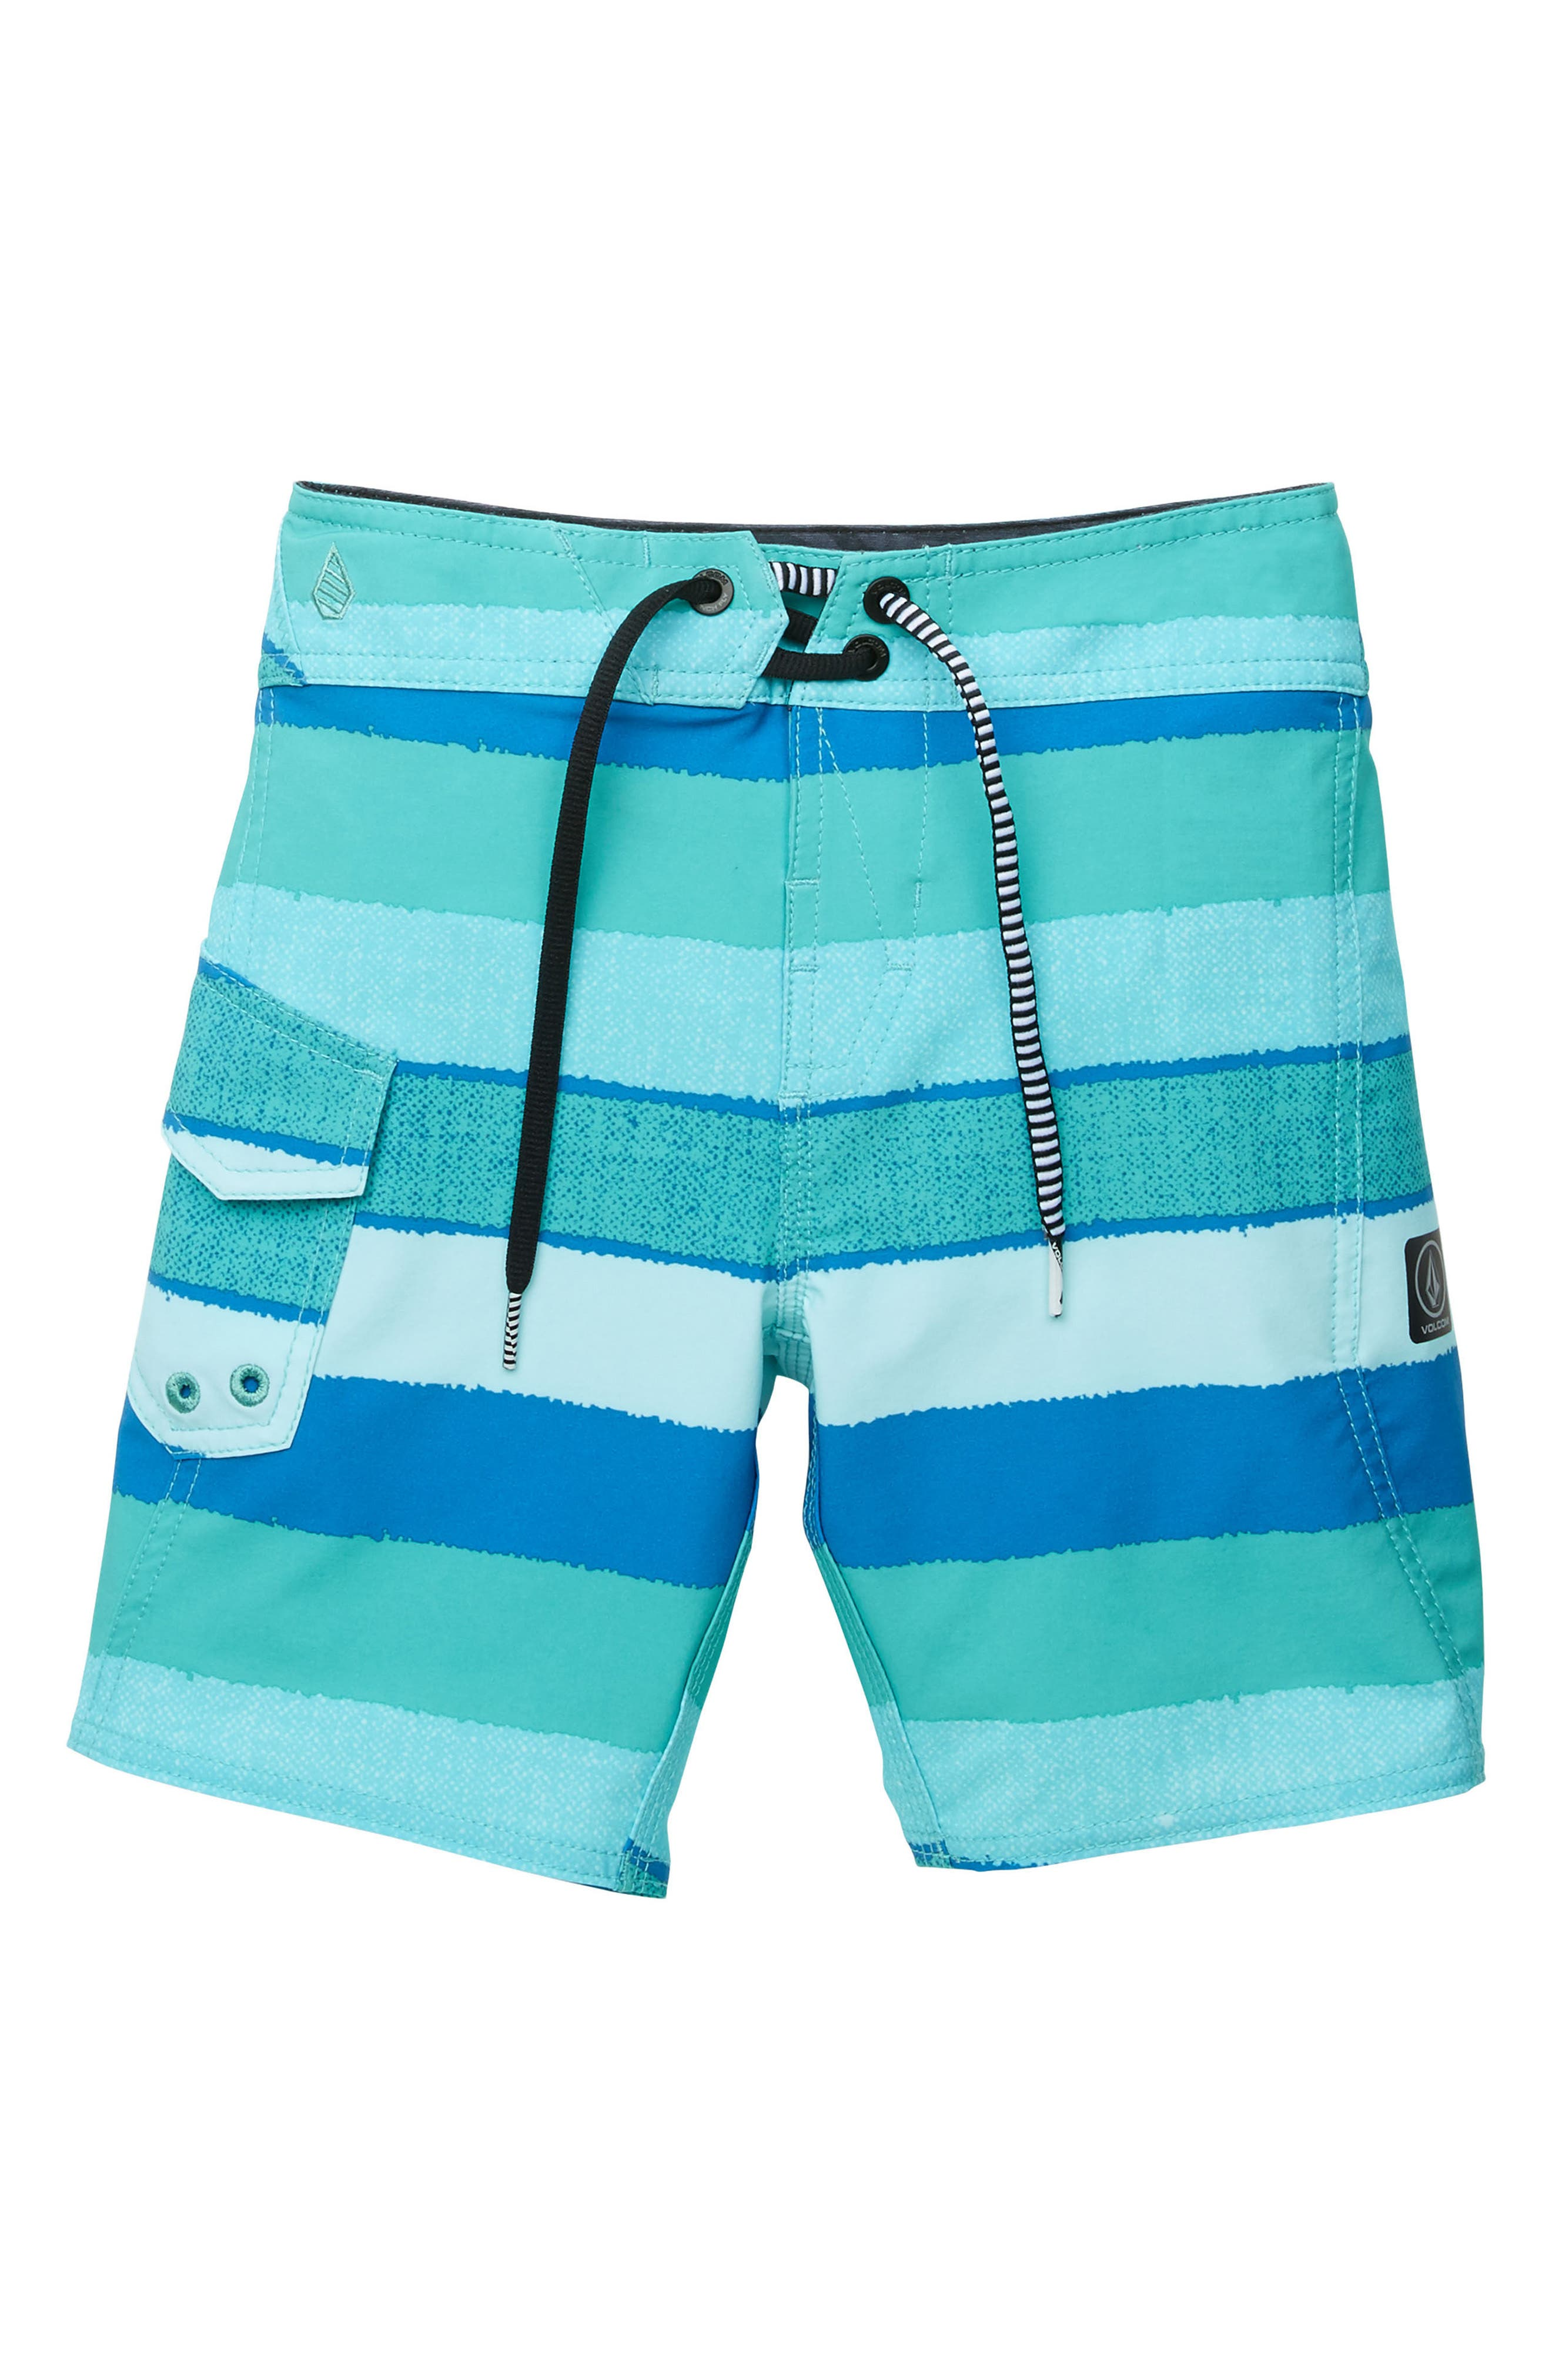 Magnetic Liney Mod Board Shorts,                         Main,                         color, Turquoise